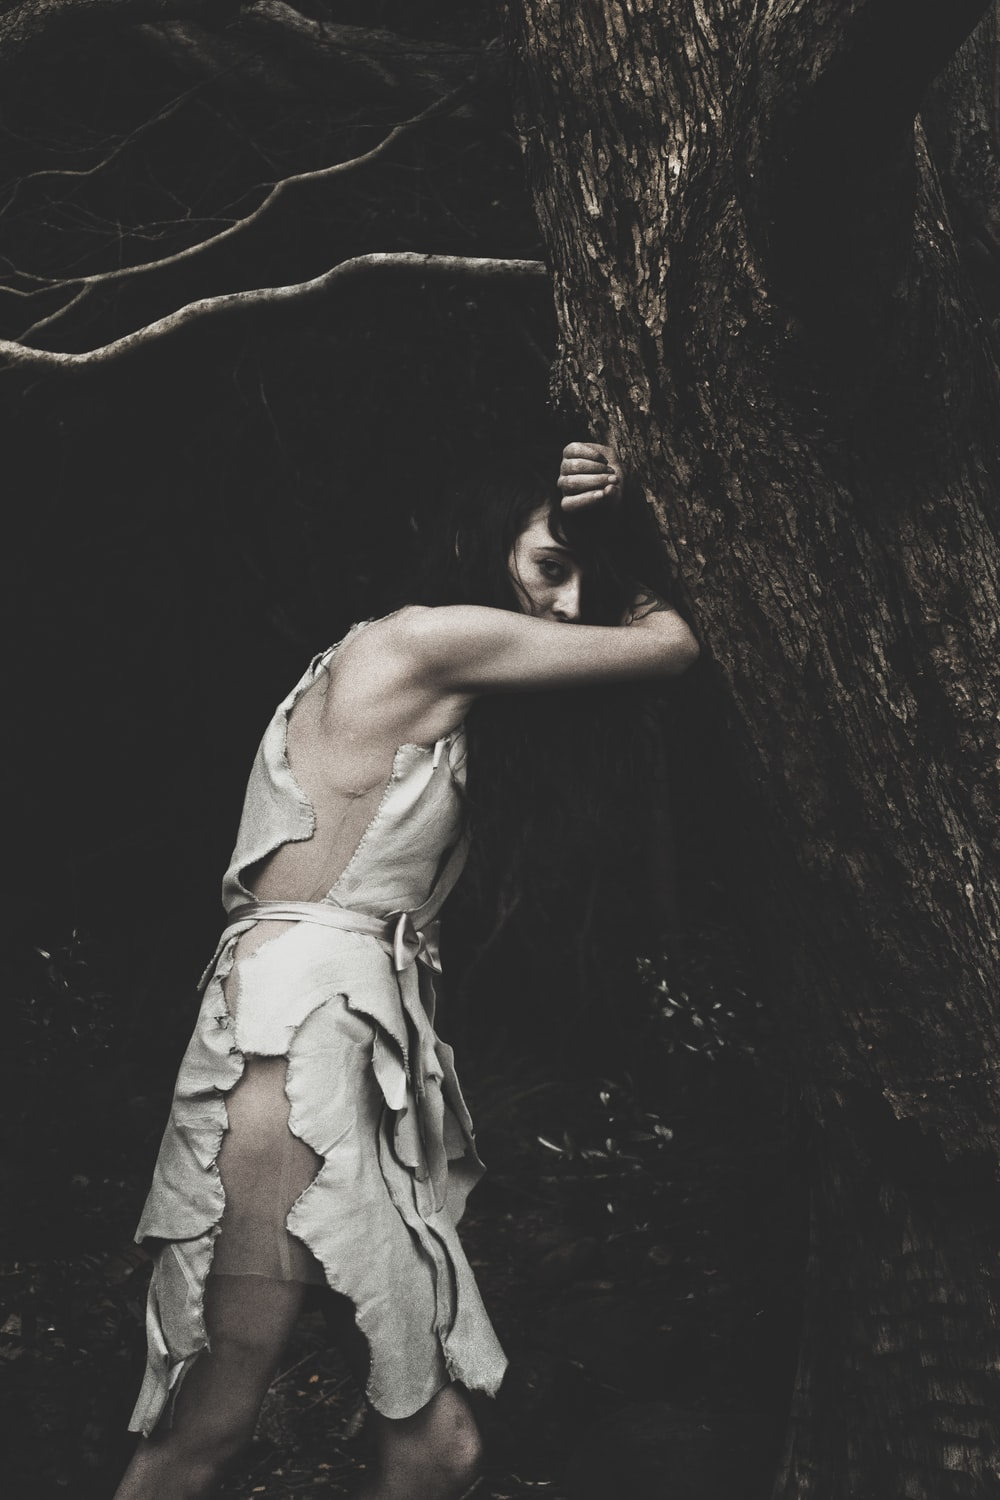 black haired woman leaning on tree trunk